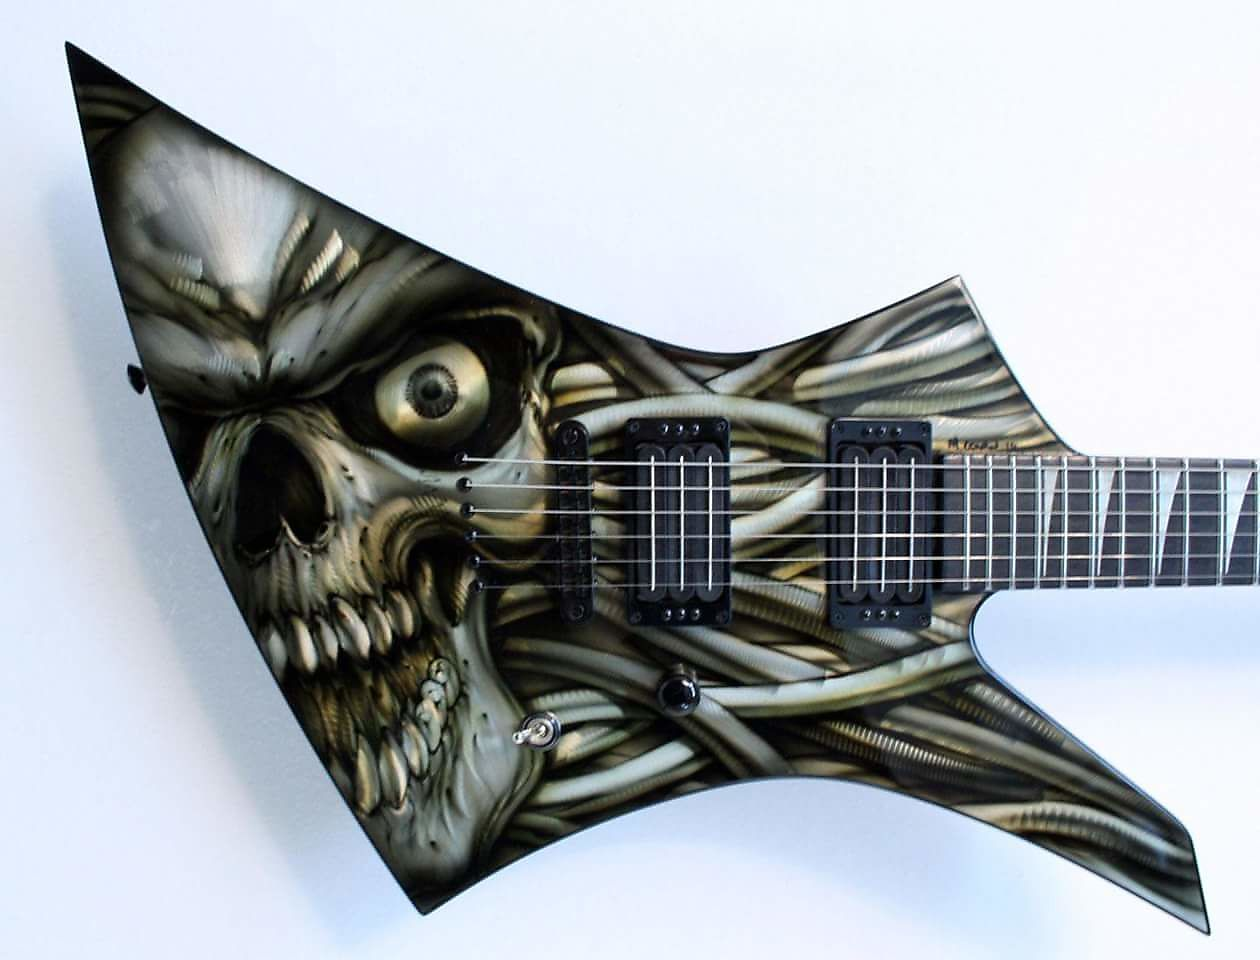 2011 Jackson Kelly Custom Shop NAMM show, metal top art by Mike ...